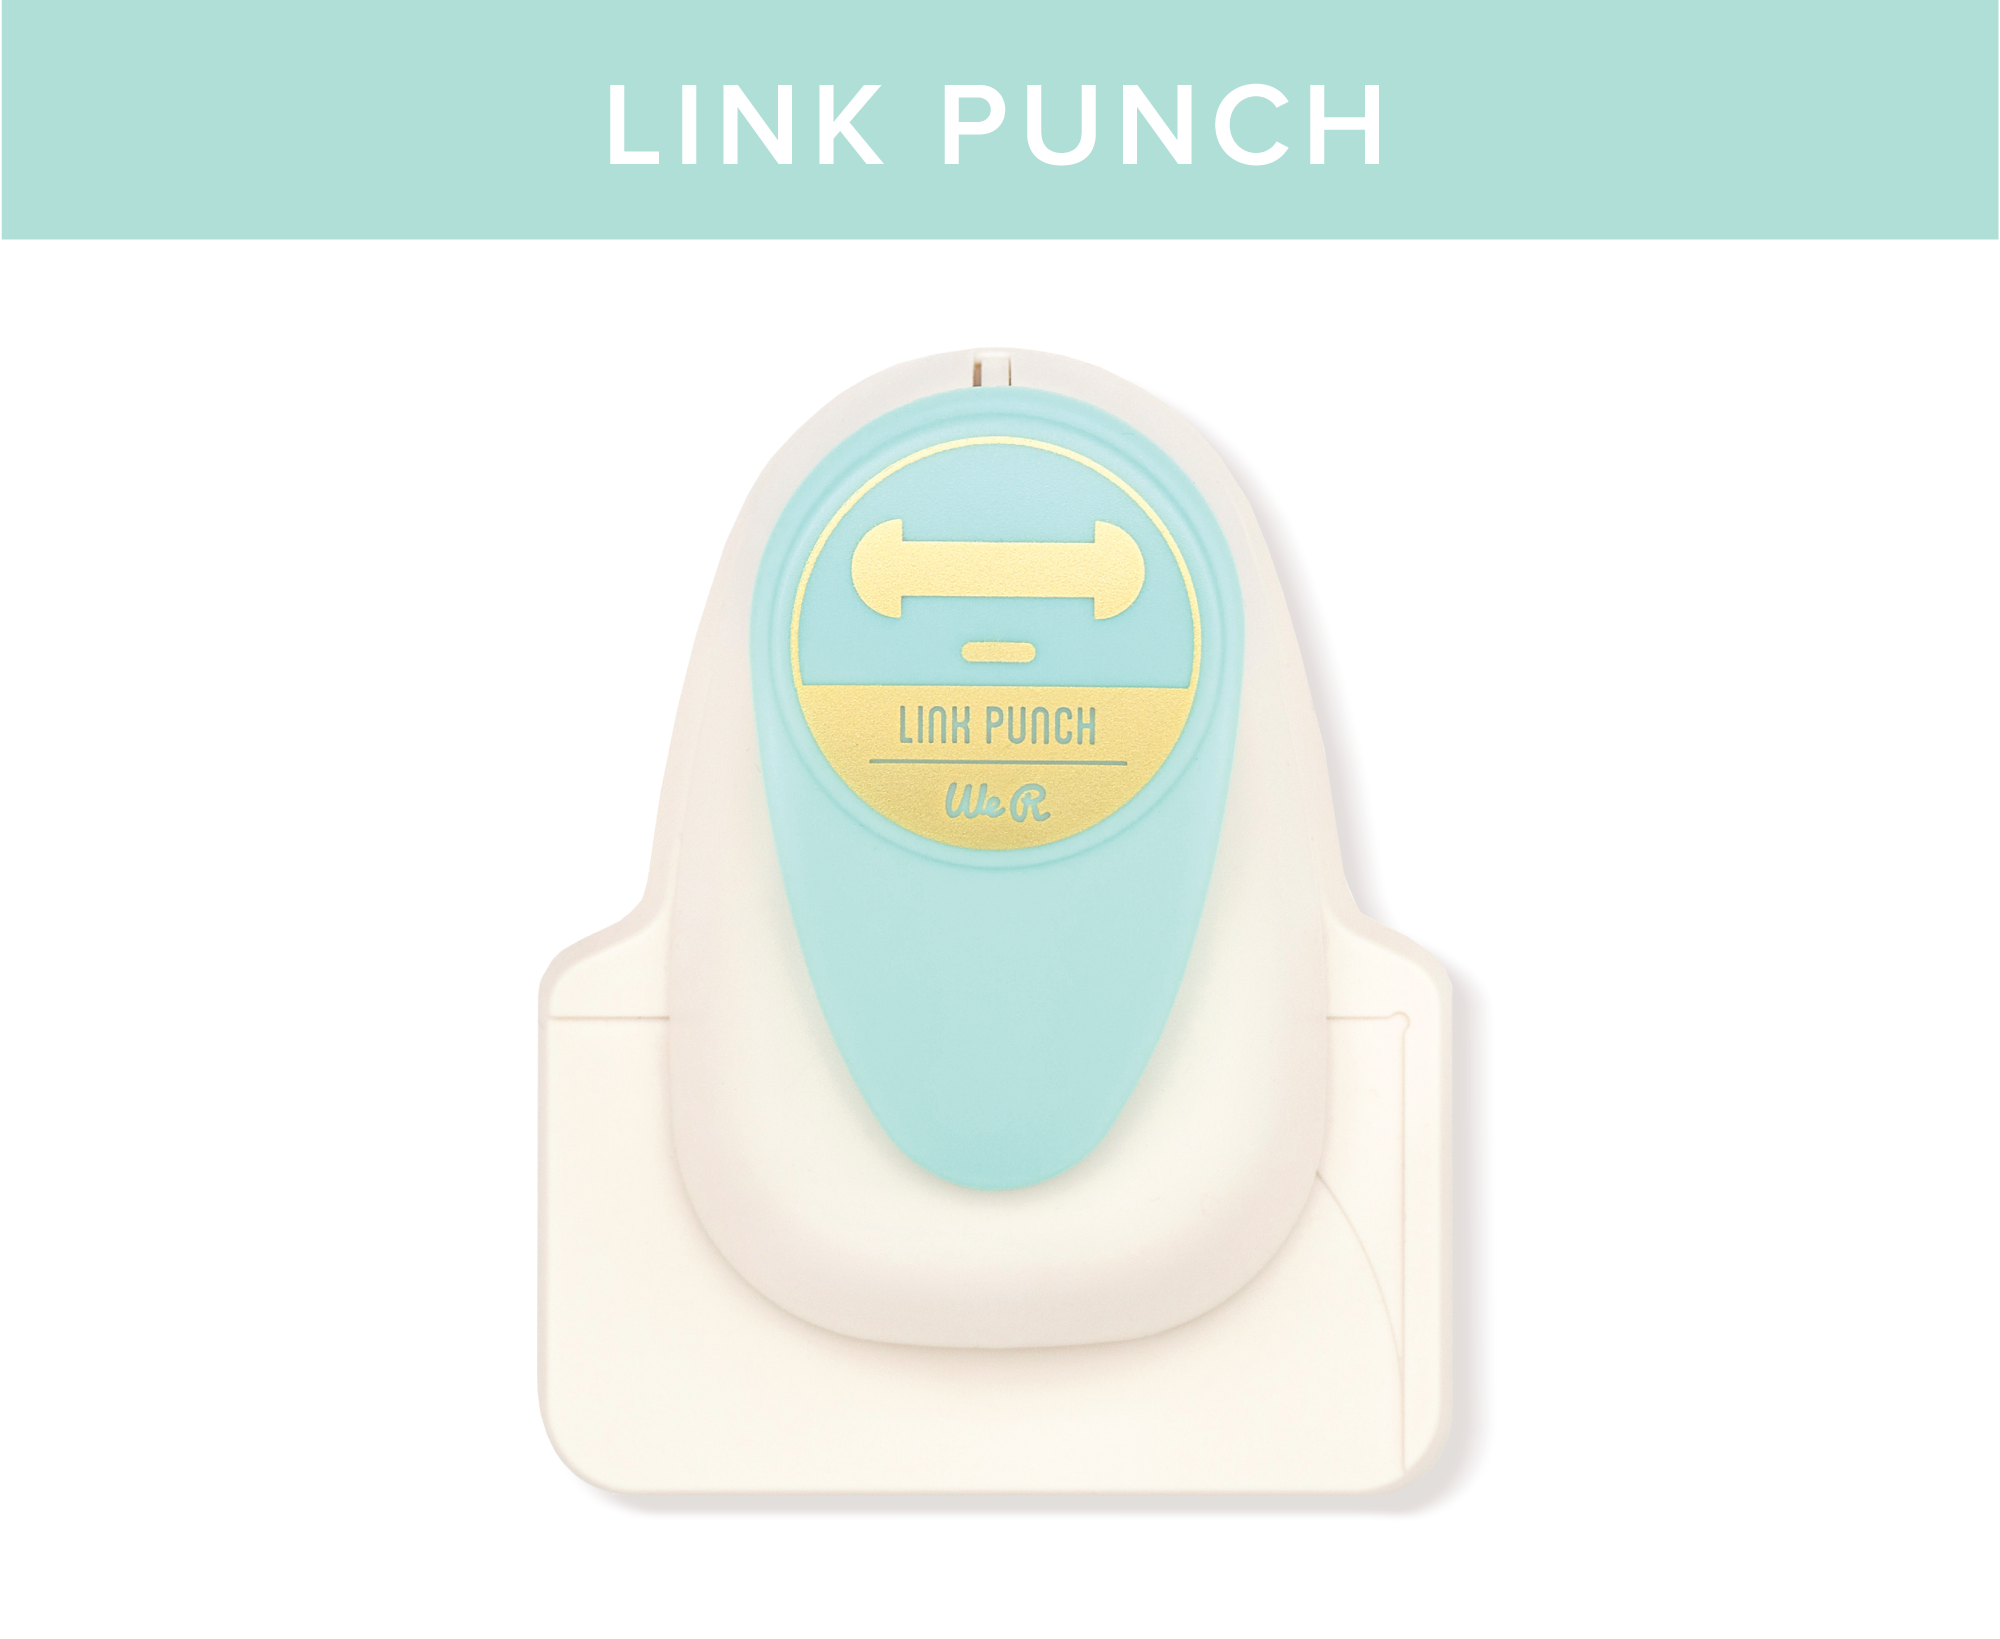 WR_Punches_Instructions_Links_LinkPunch